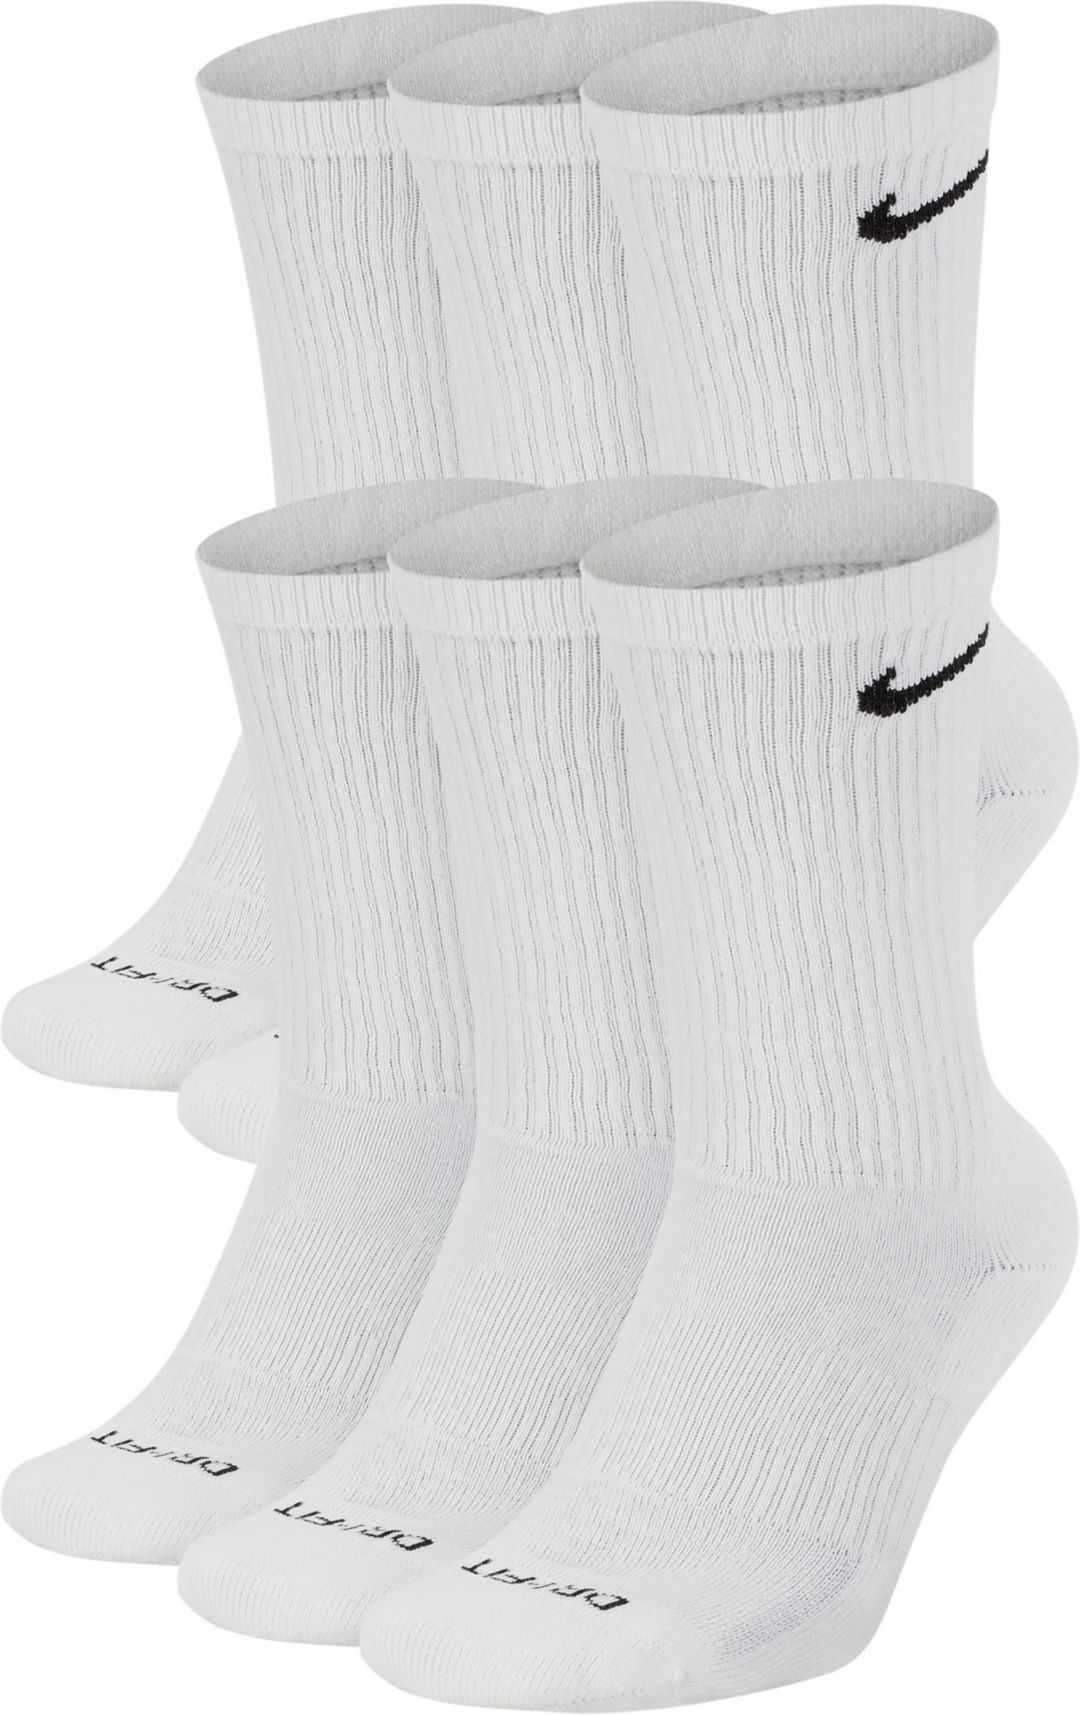 Nike Dri FIT Everyday Plus Cushion Training Crew Socks 6 Pack